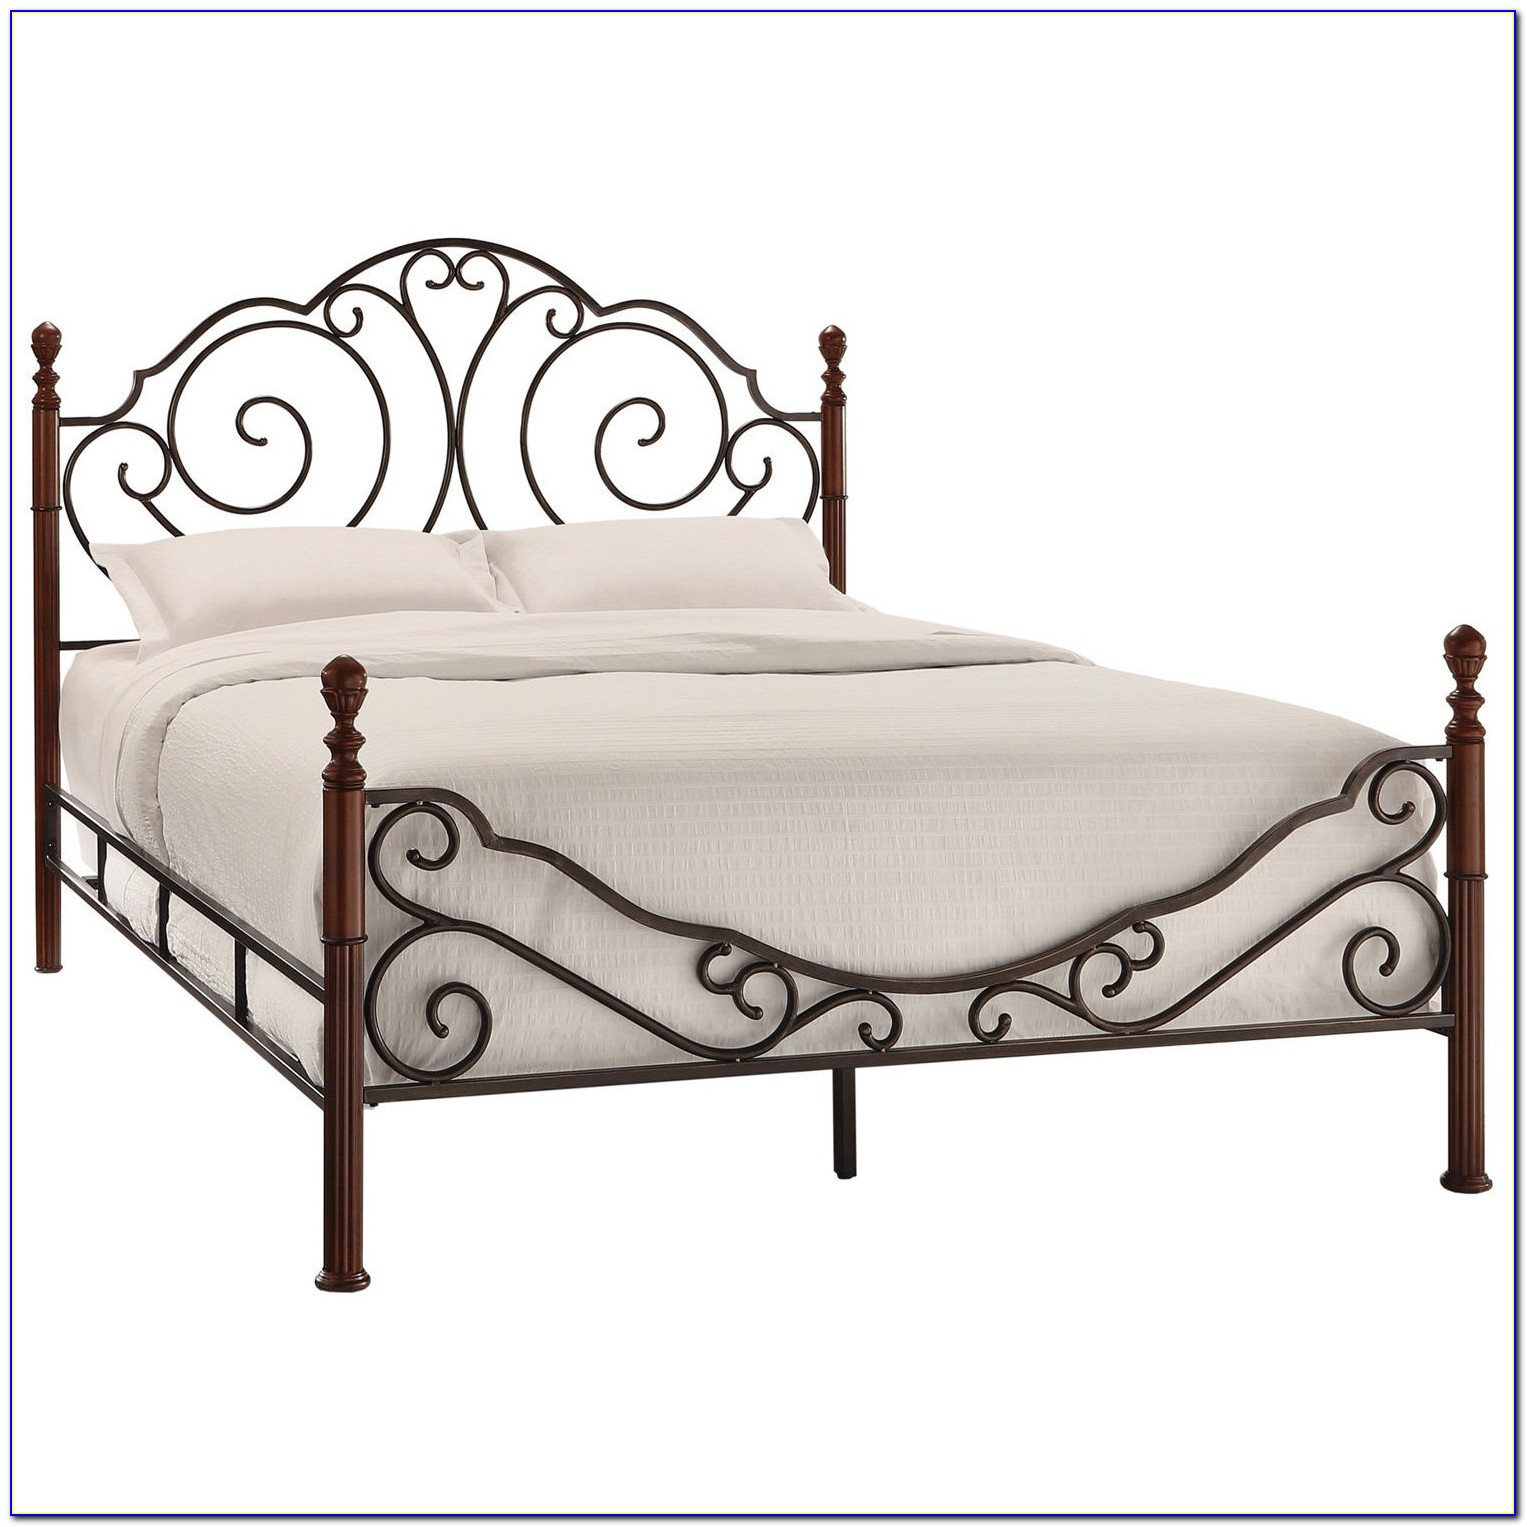 Queen Metal Bed Frame Headboard Footboard